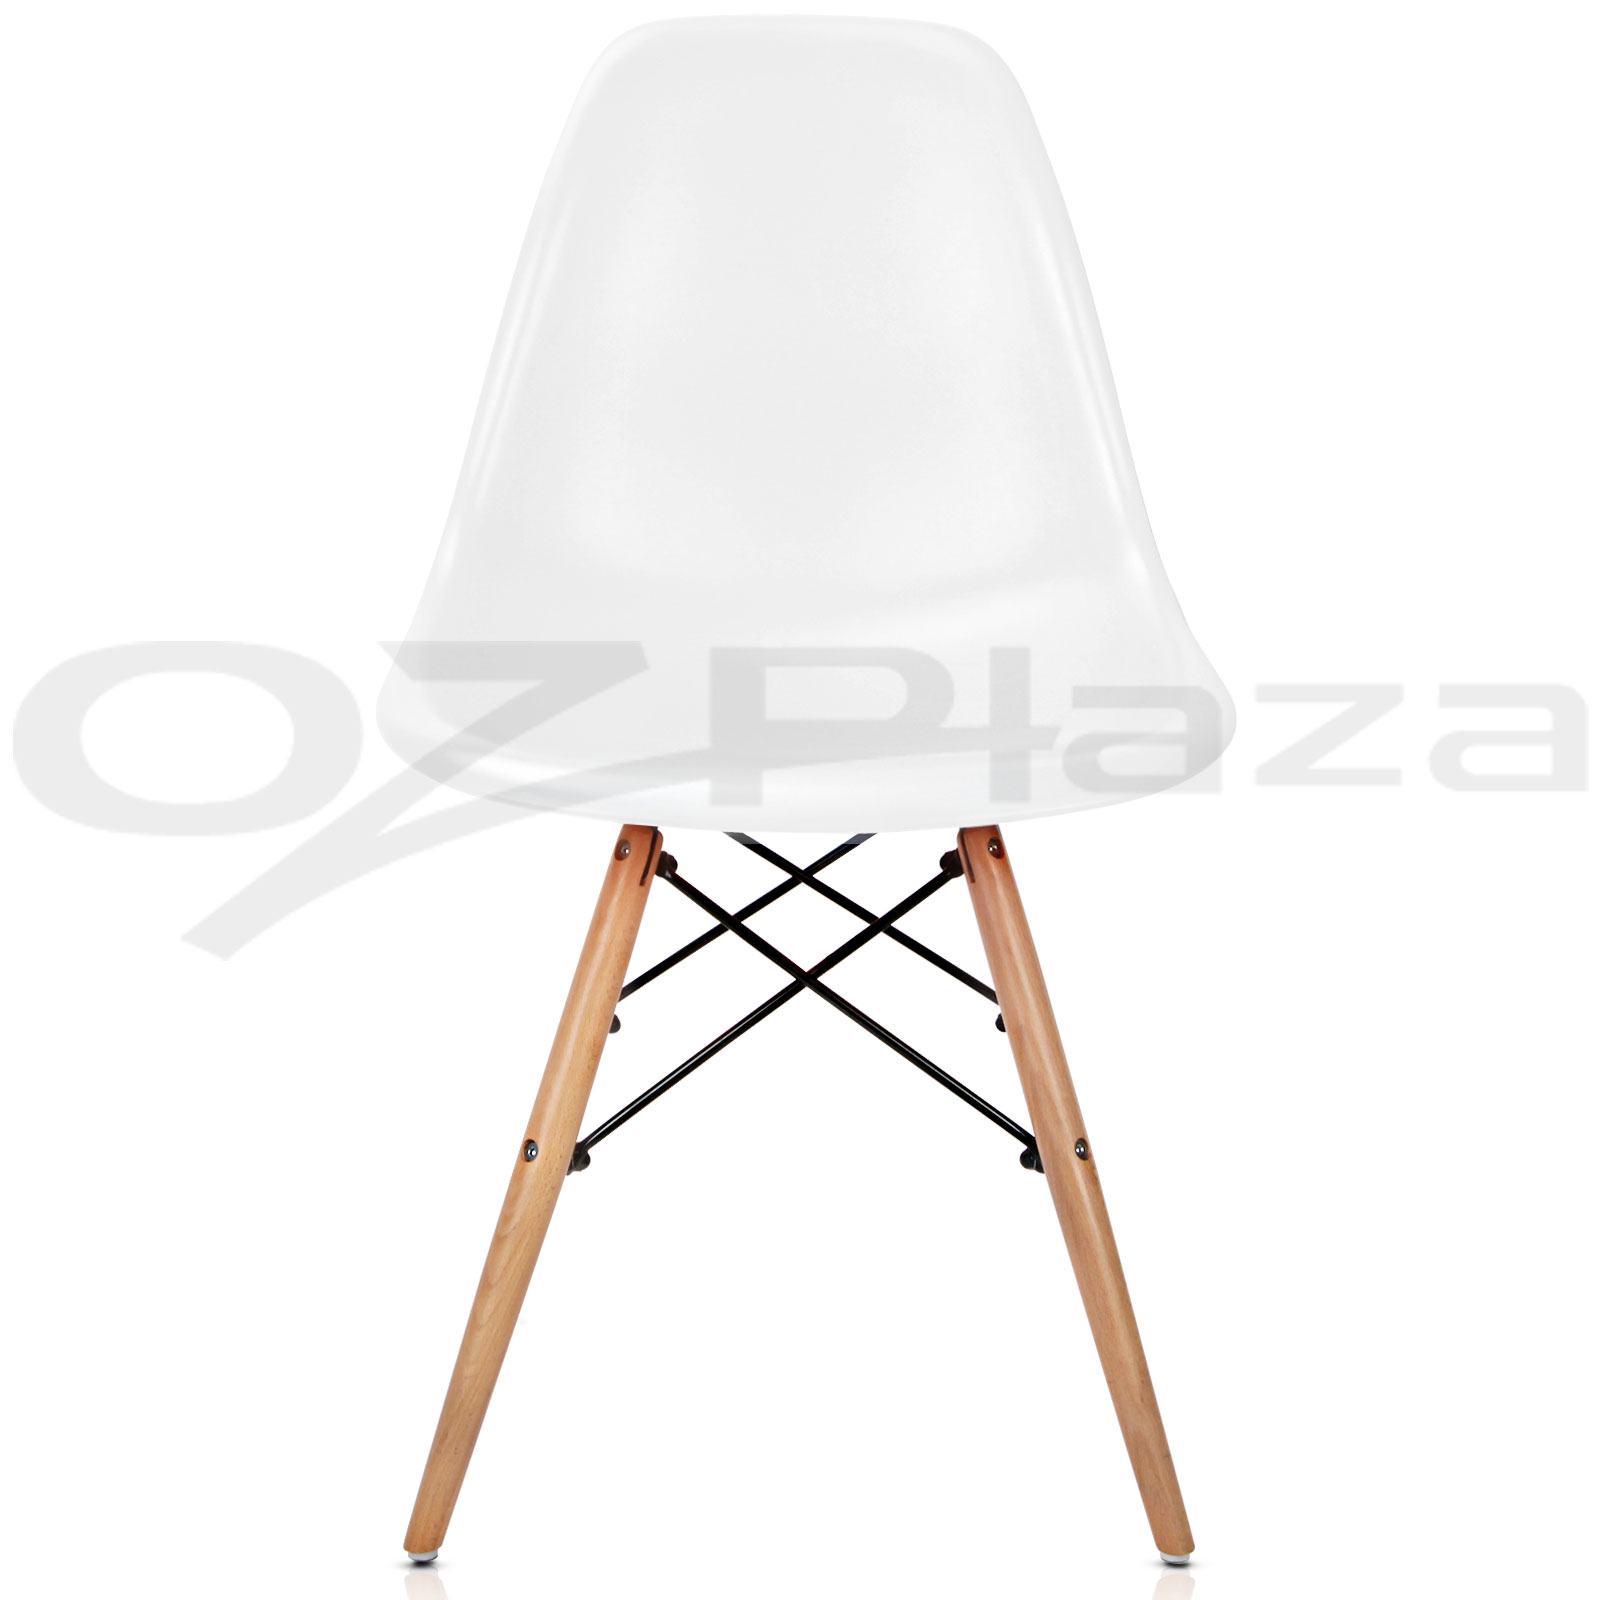 Set of 1x wooden dining table 4x eames replica dsw retro for Eames replica deutschland